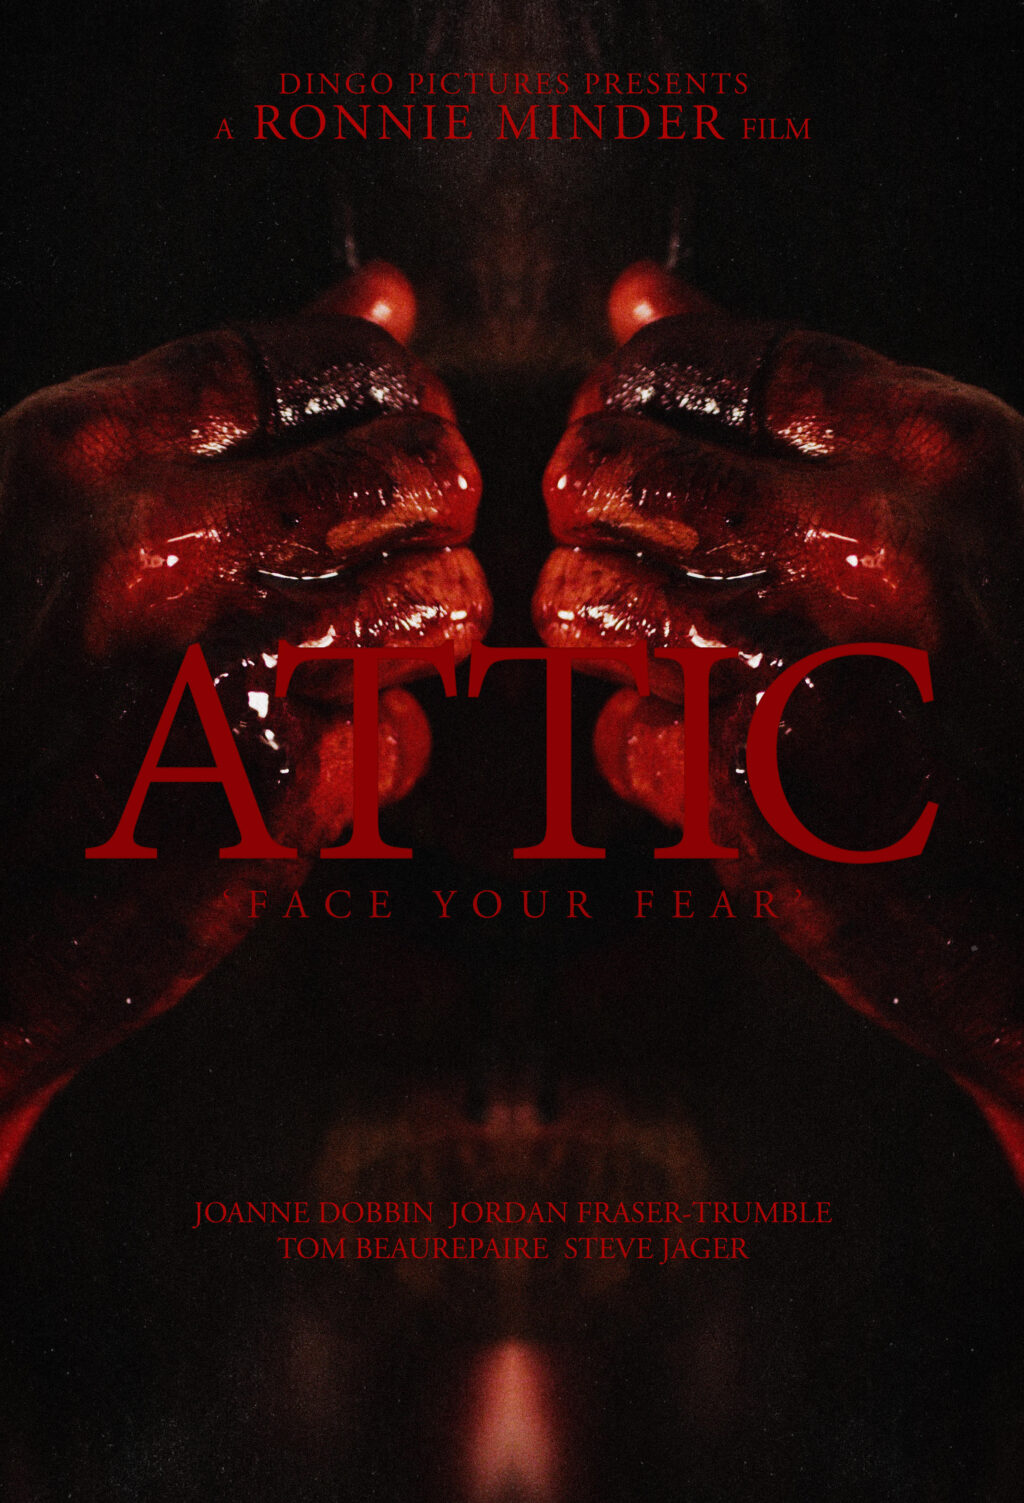 Attic Poster 1024x1503 - Nightmarish Directorial Debut ATTIC by Award-Winning Composer Ronnie Minder in the Works